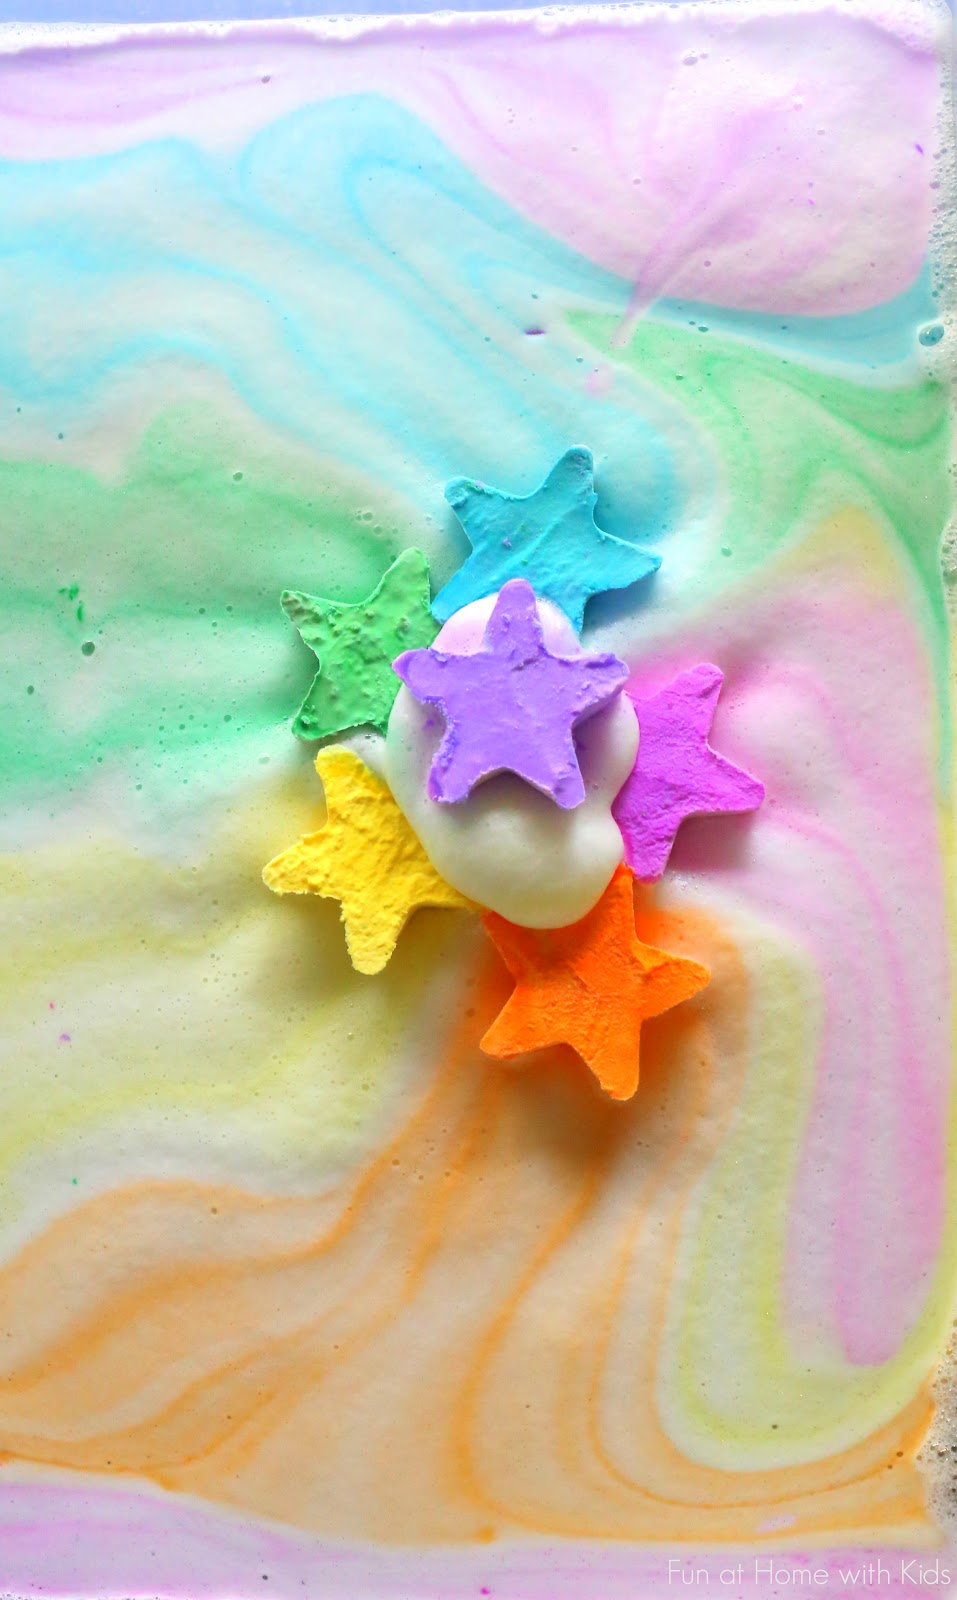 A NEW play recipe:  Magic Foaming Stars.  Add them to your shallow tray and watch as they shoot out rays of colored foam.  Search through the mound of puffy ice cold foam produced to find the treasures once hidden inside.  From Fun at Home with Kids